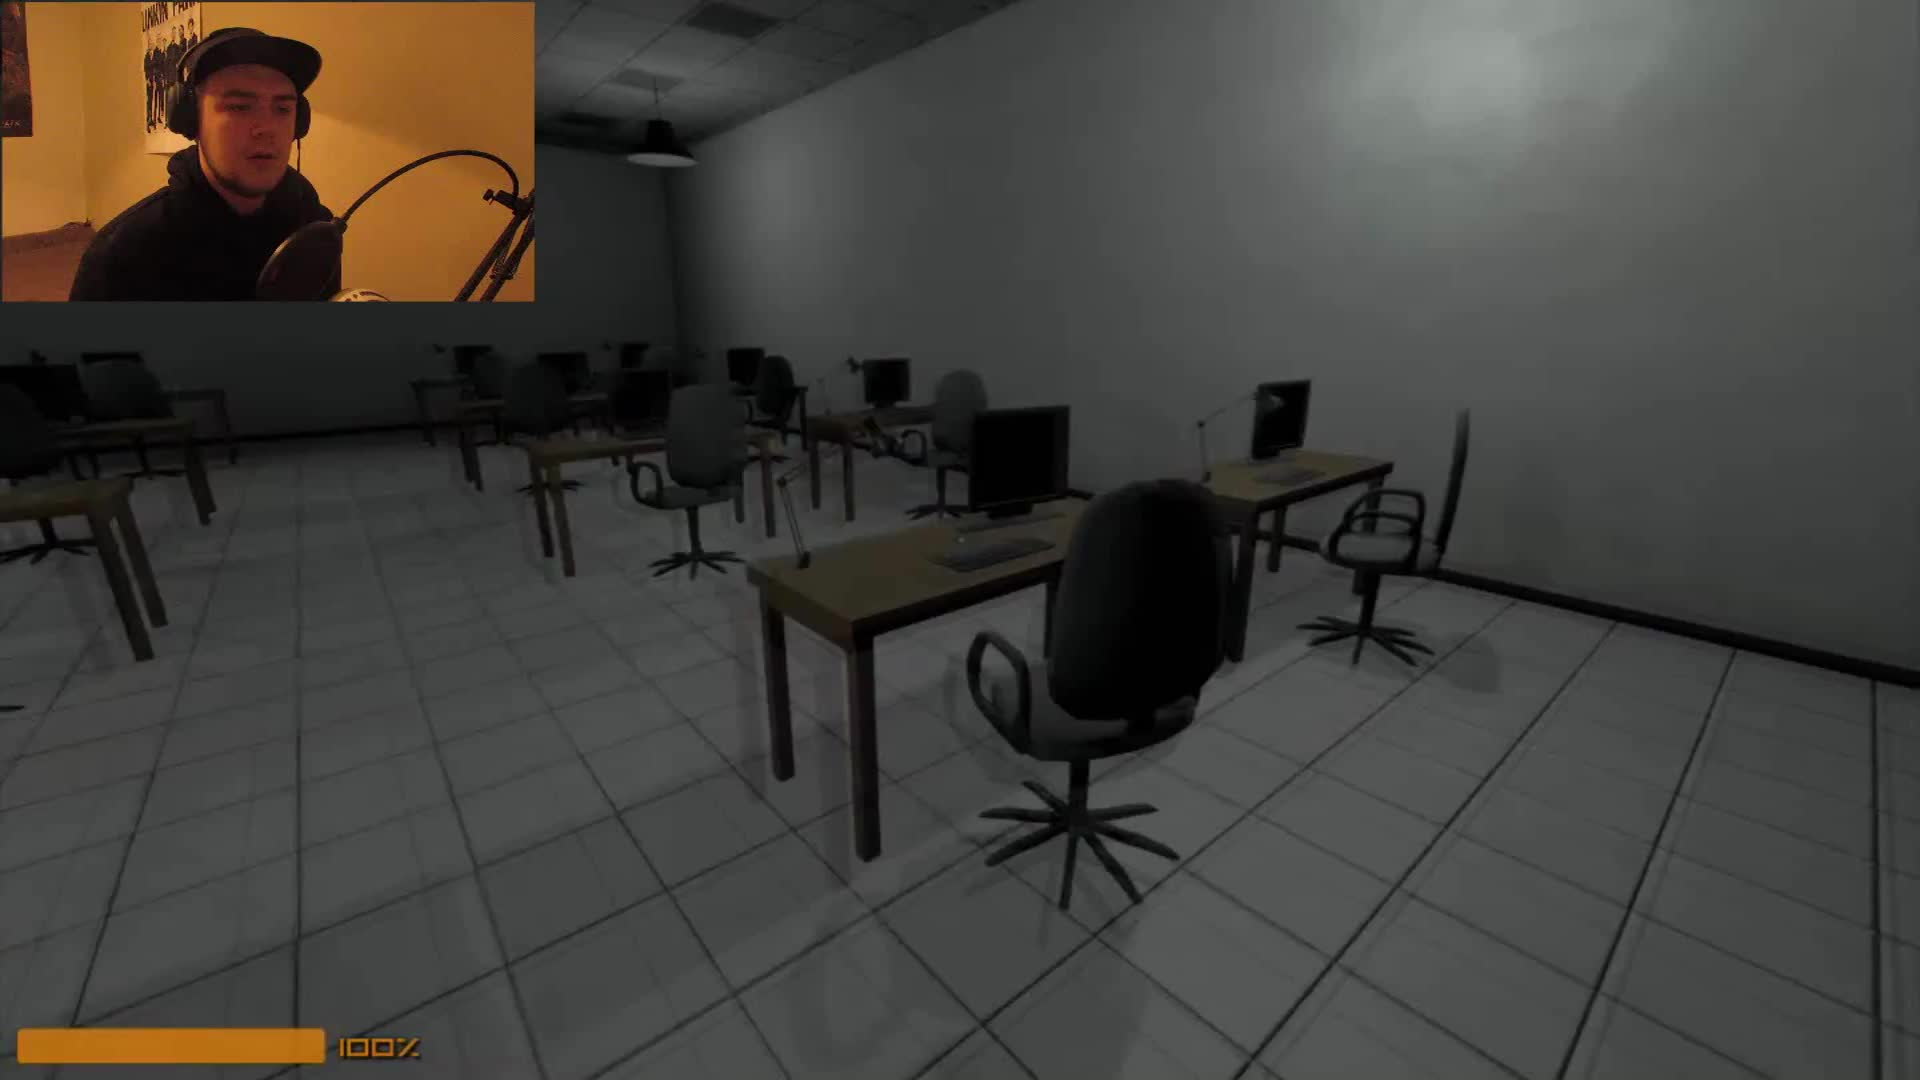 SCP Multiplayer, SCP containment breach, scp secret laboratory chaos insurgency, scp secret laboratory coop, scp secret laboratory funny moments, scp secret laboratory gameplay, scp secret laboratory multiplayer, scp secret laboratory scp 106, scp secret laboratory stealth, WHAT ARE THE ODDS | SCP Secret Laboratory (Open Beta) GIFs